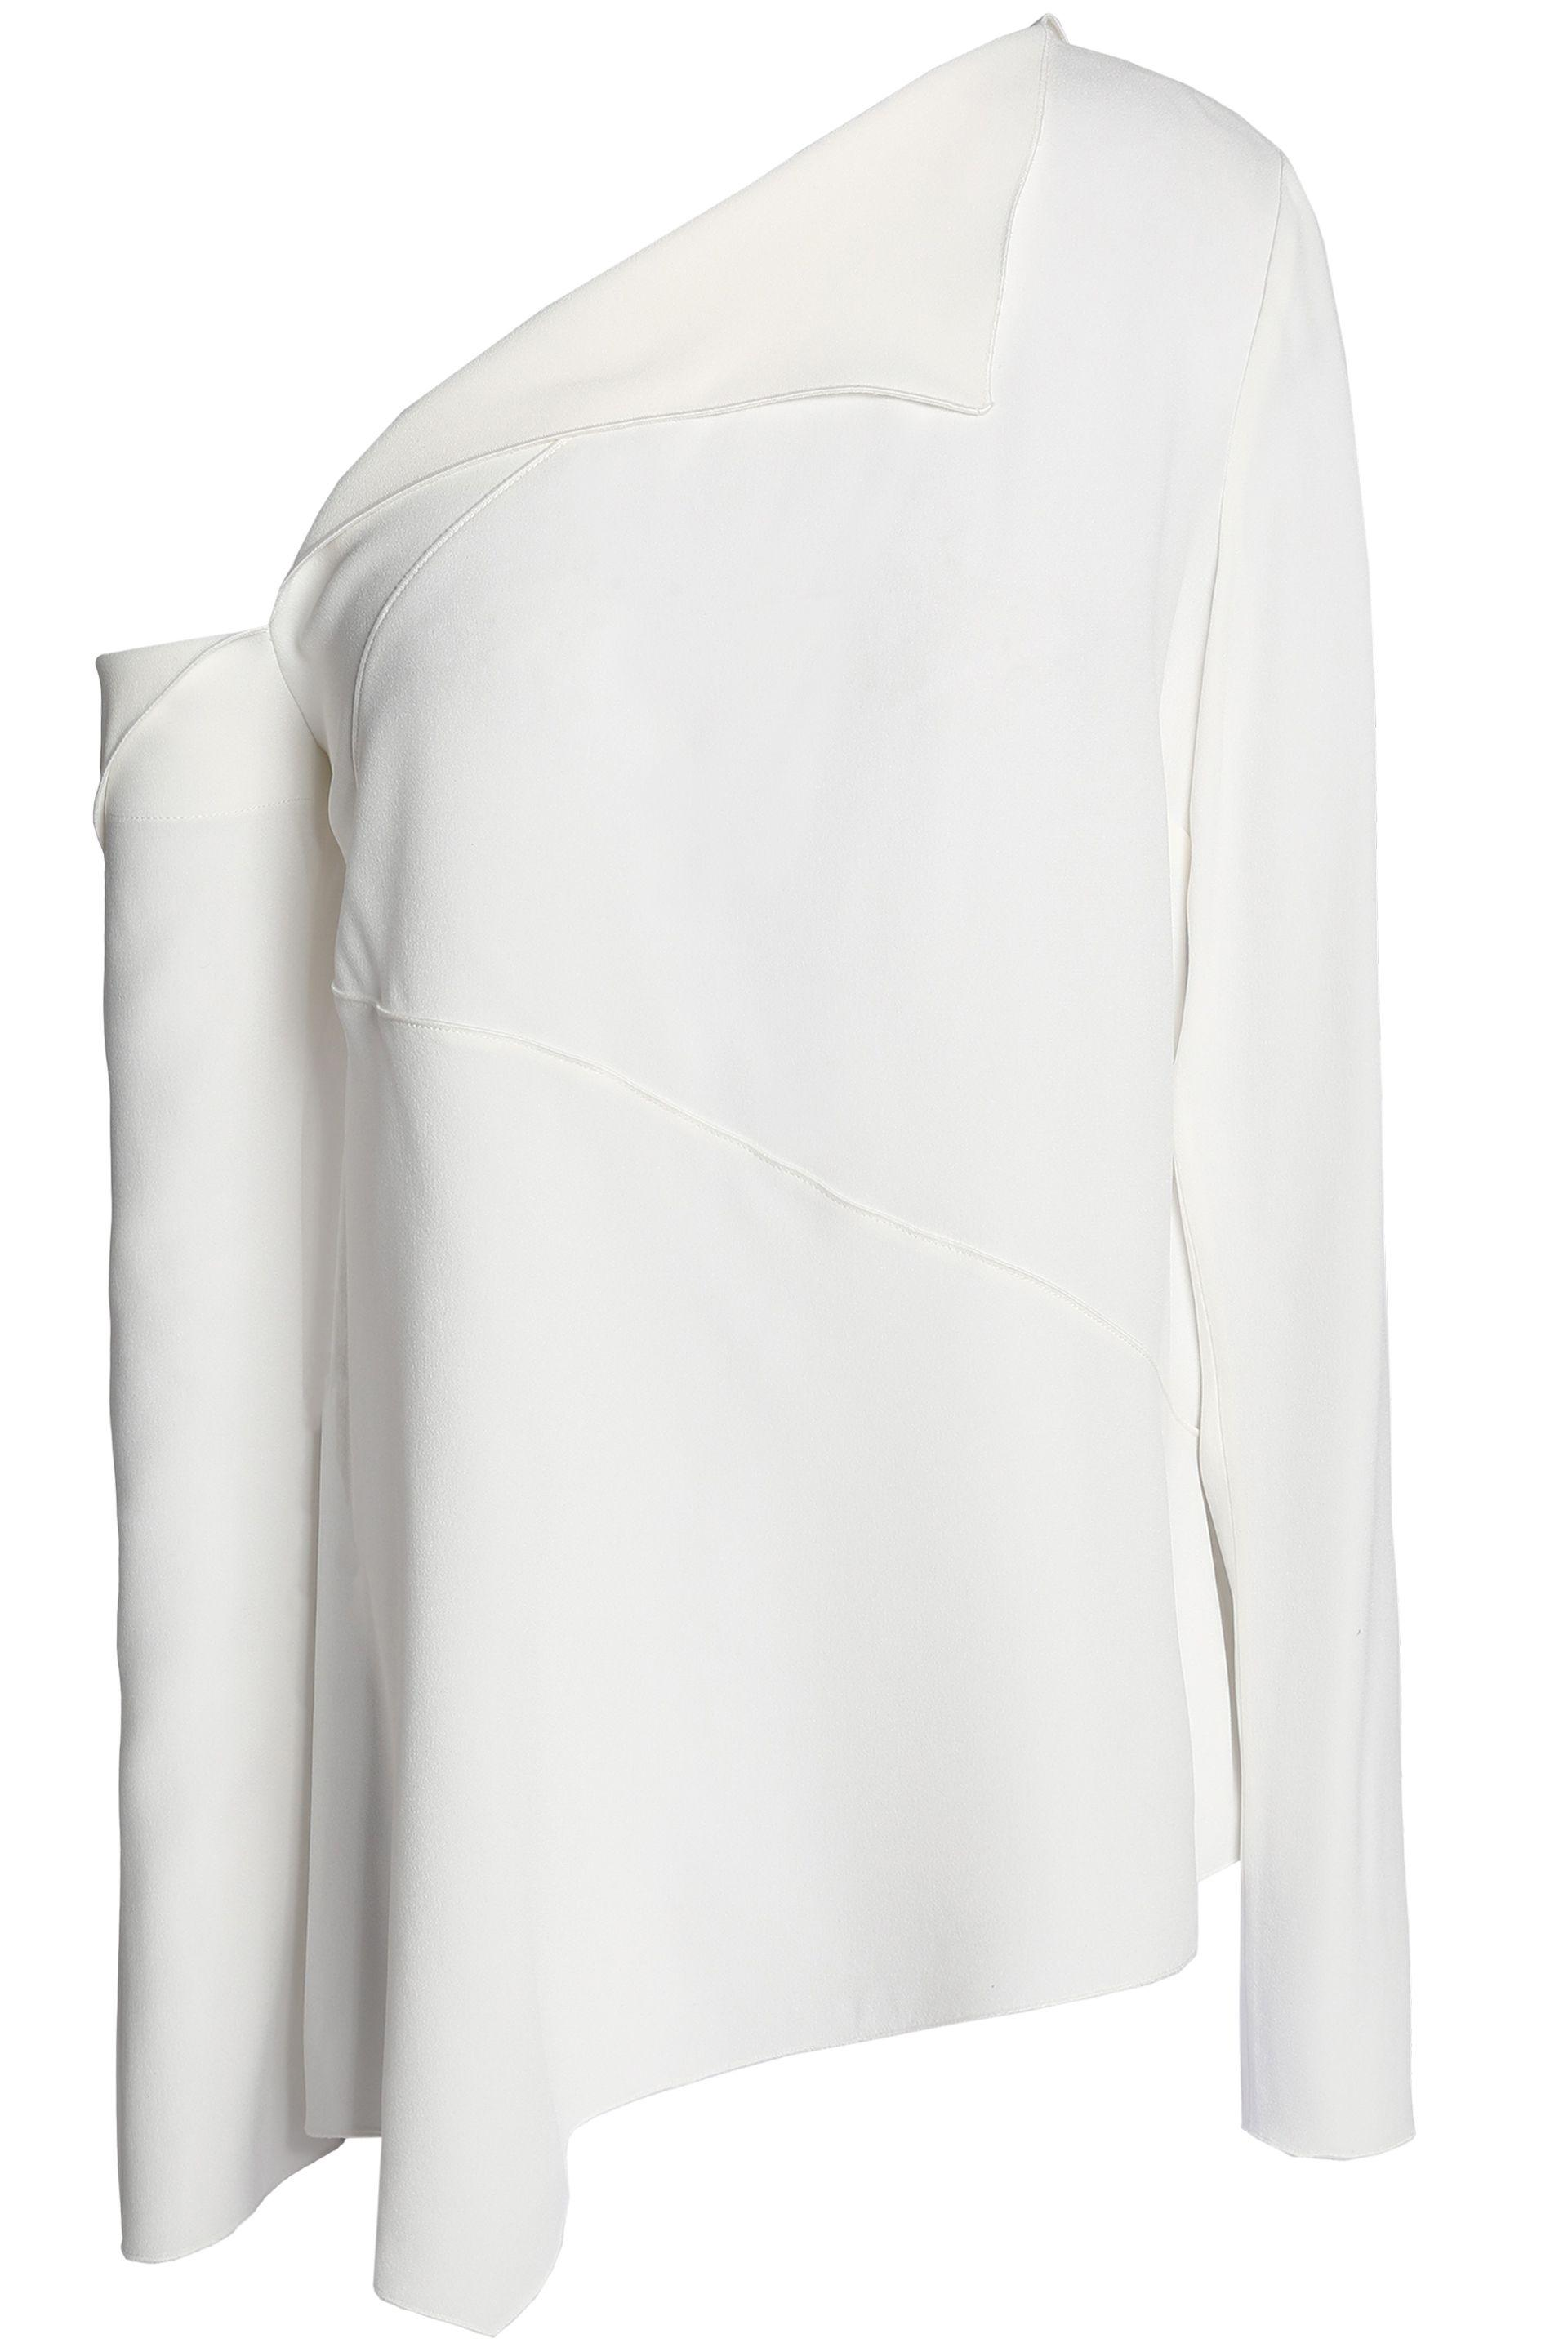 541f966c4bf0a2 Lyst - Proenza Schouler Woman One-shoulder Satin-crepe Top White in ...